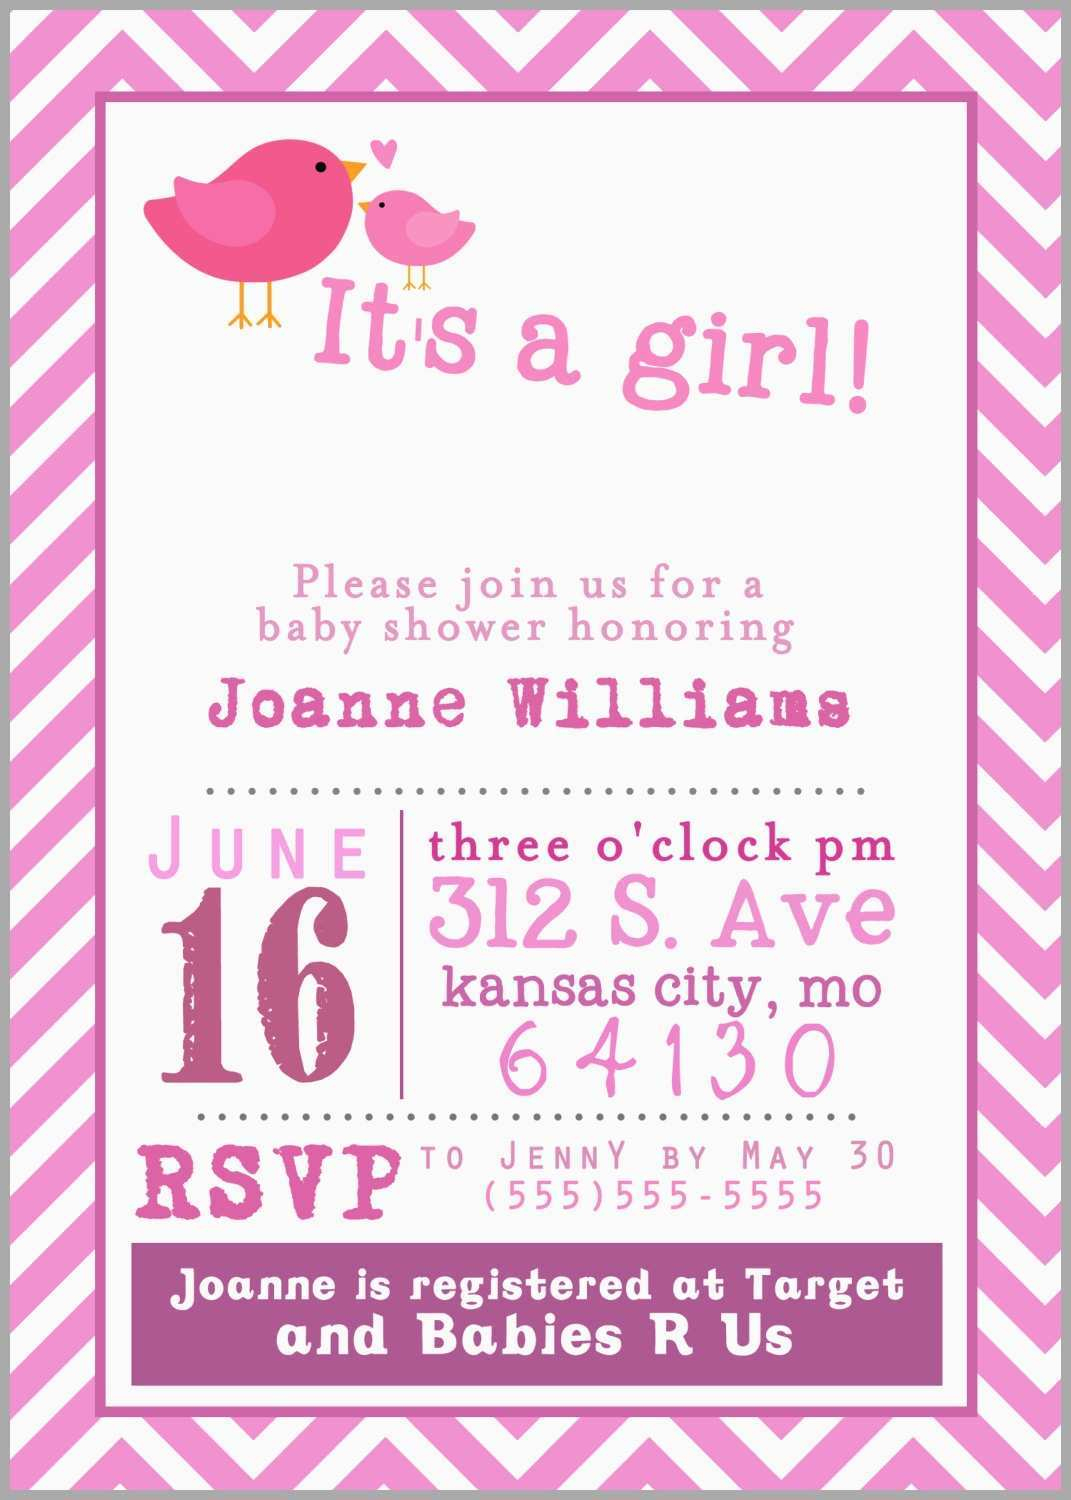 Create Your Own Baby Shower Invitations Free Printable New Baby - Create Your Own Baby Shower Invitations Free Printable